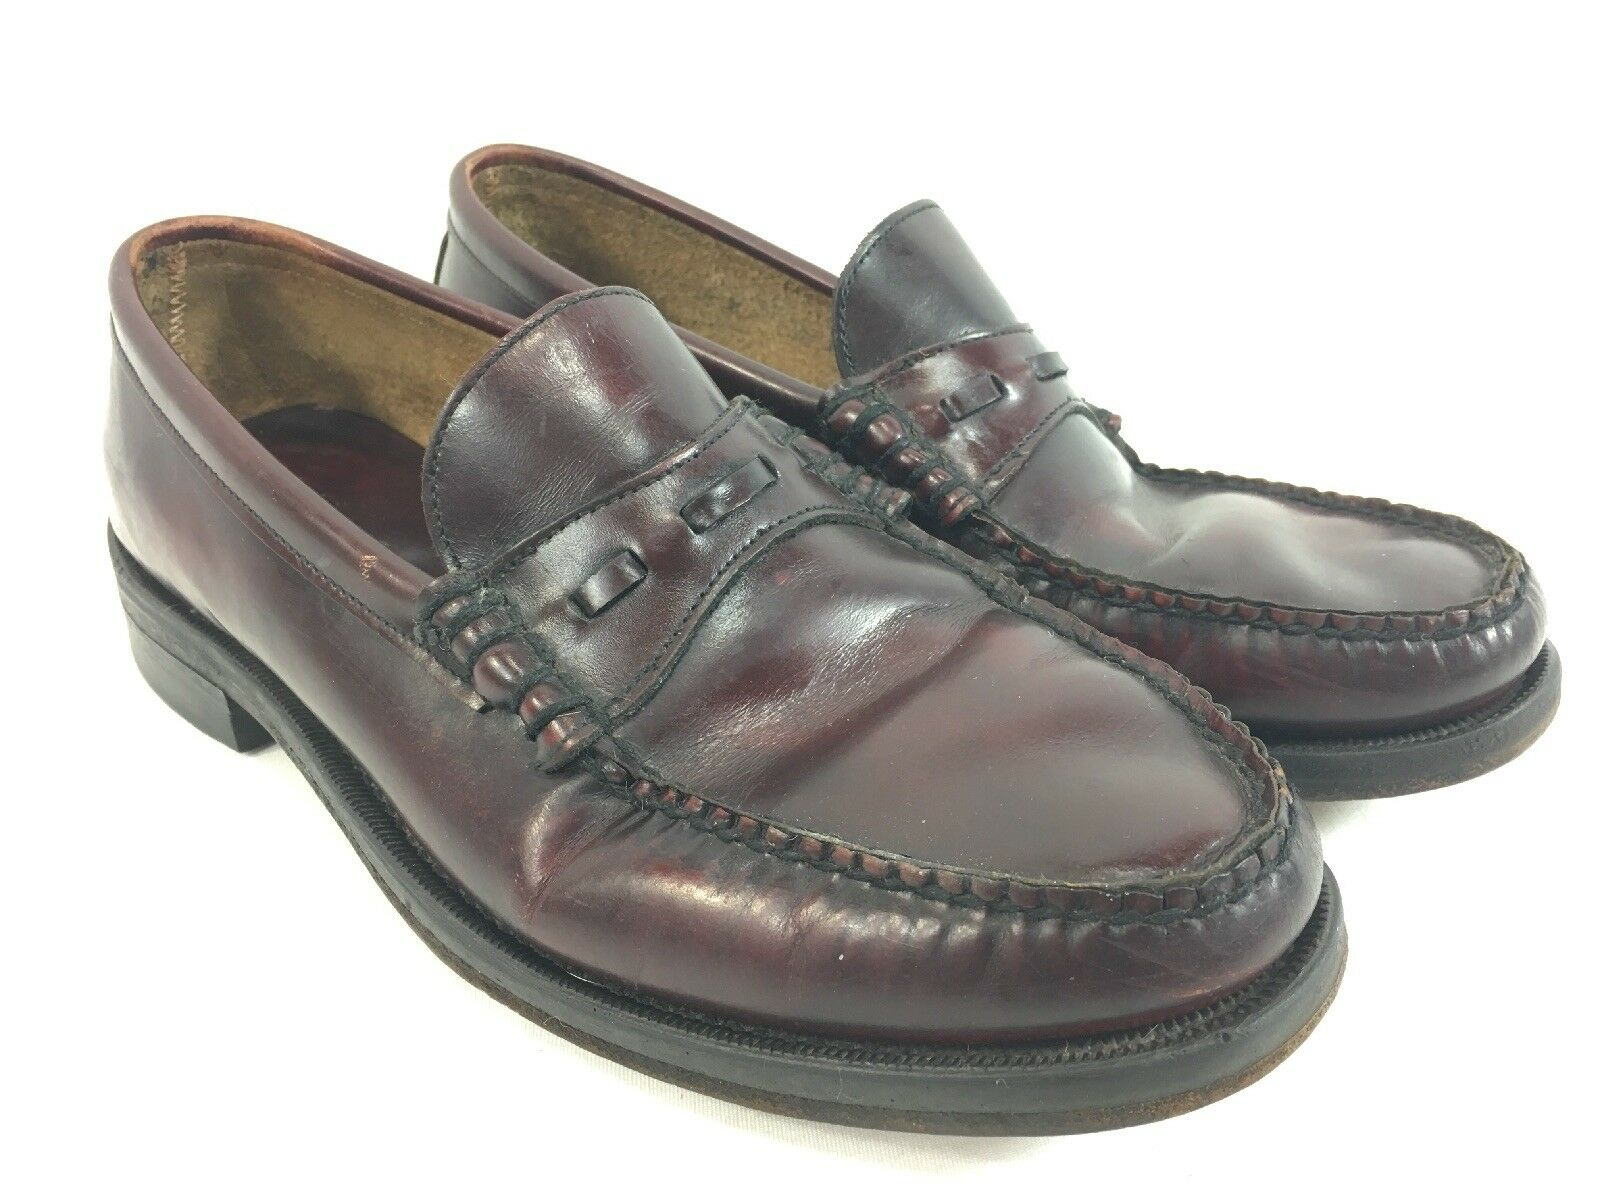 LL Bean Loafers shoes Mens 9 D Slip On Burgundy Leather